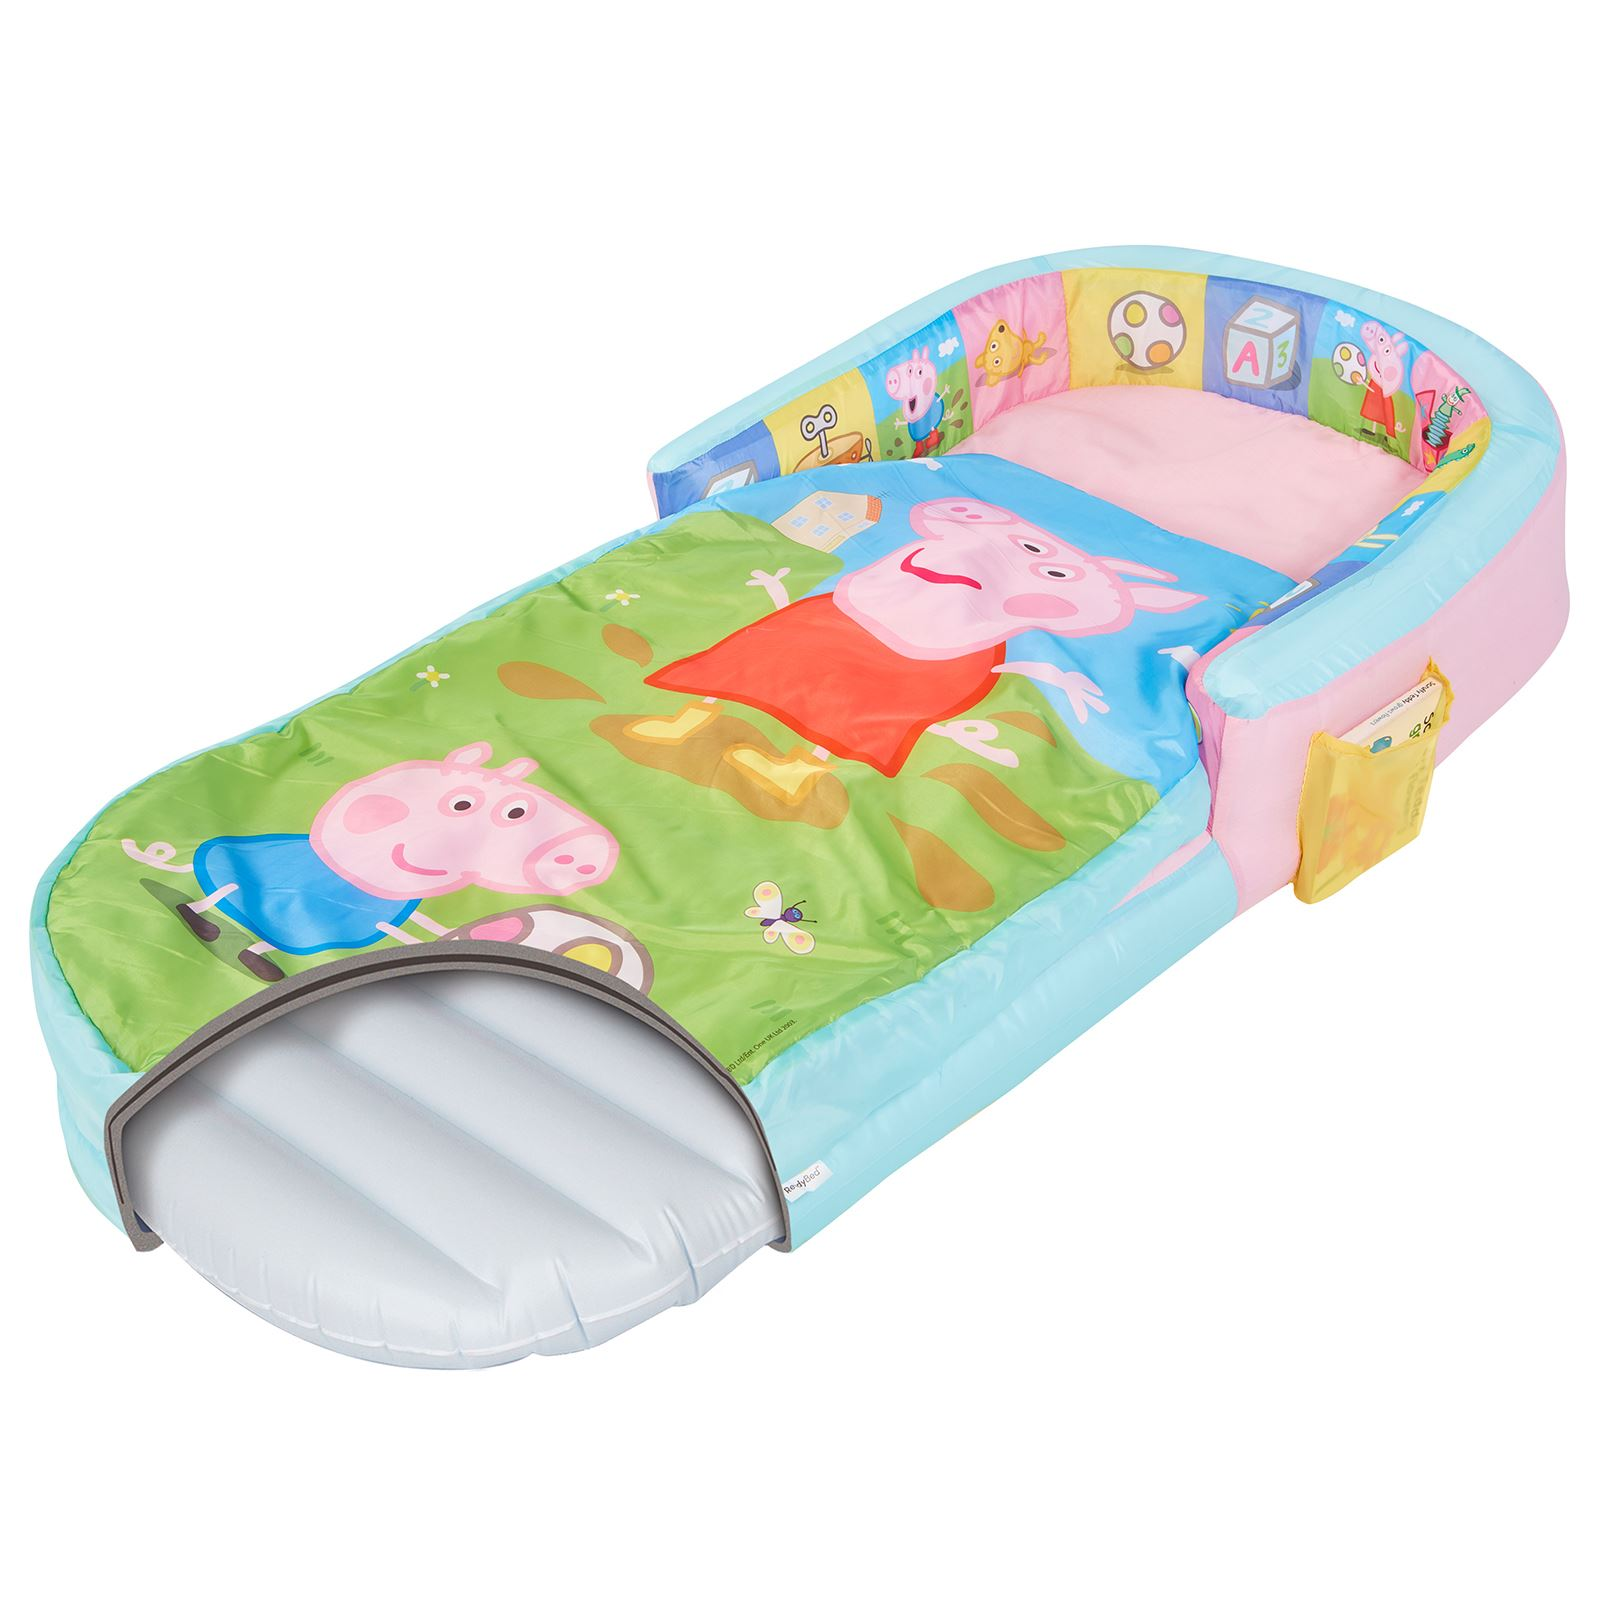 details about peppa pig and george my first ready bed air mattress portable  kids